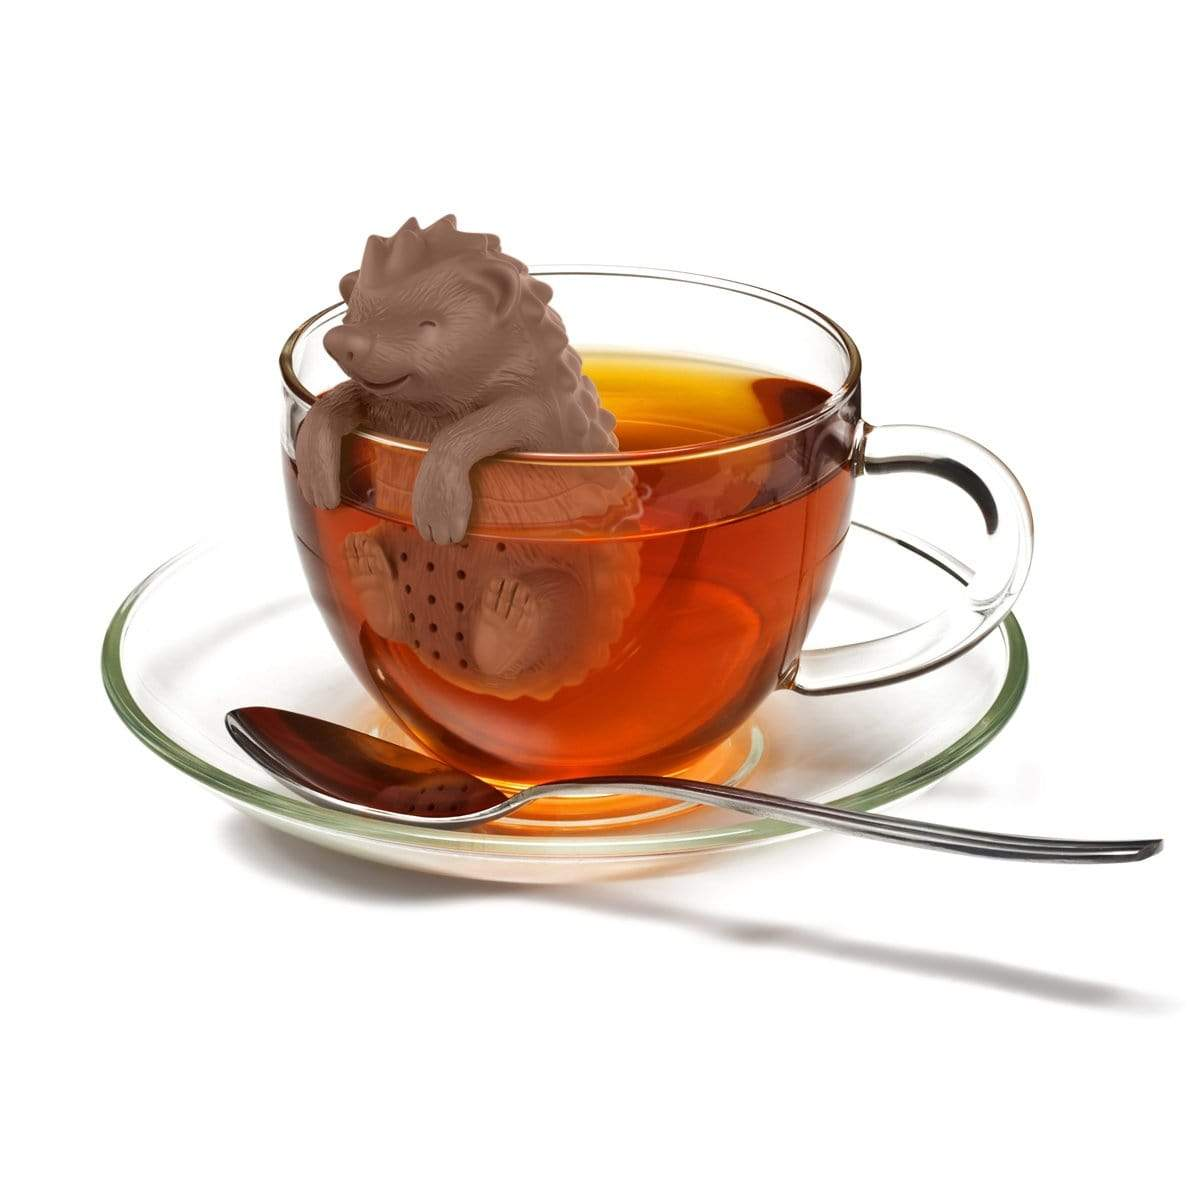 Cute-Tea Hedgehog - Tea Infuser